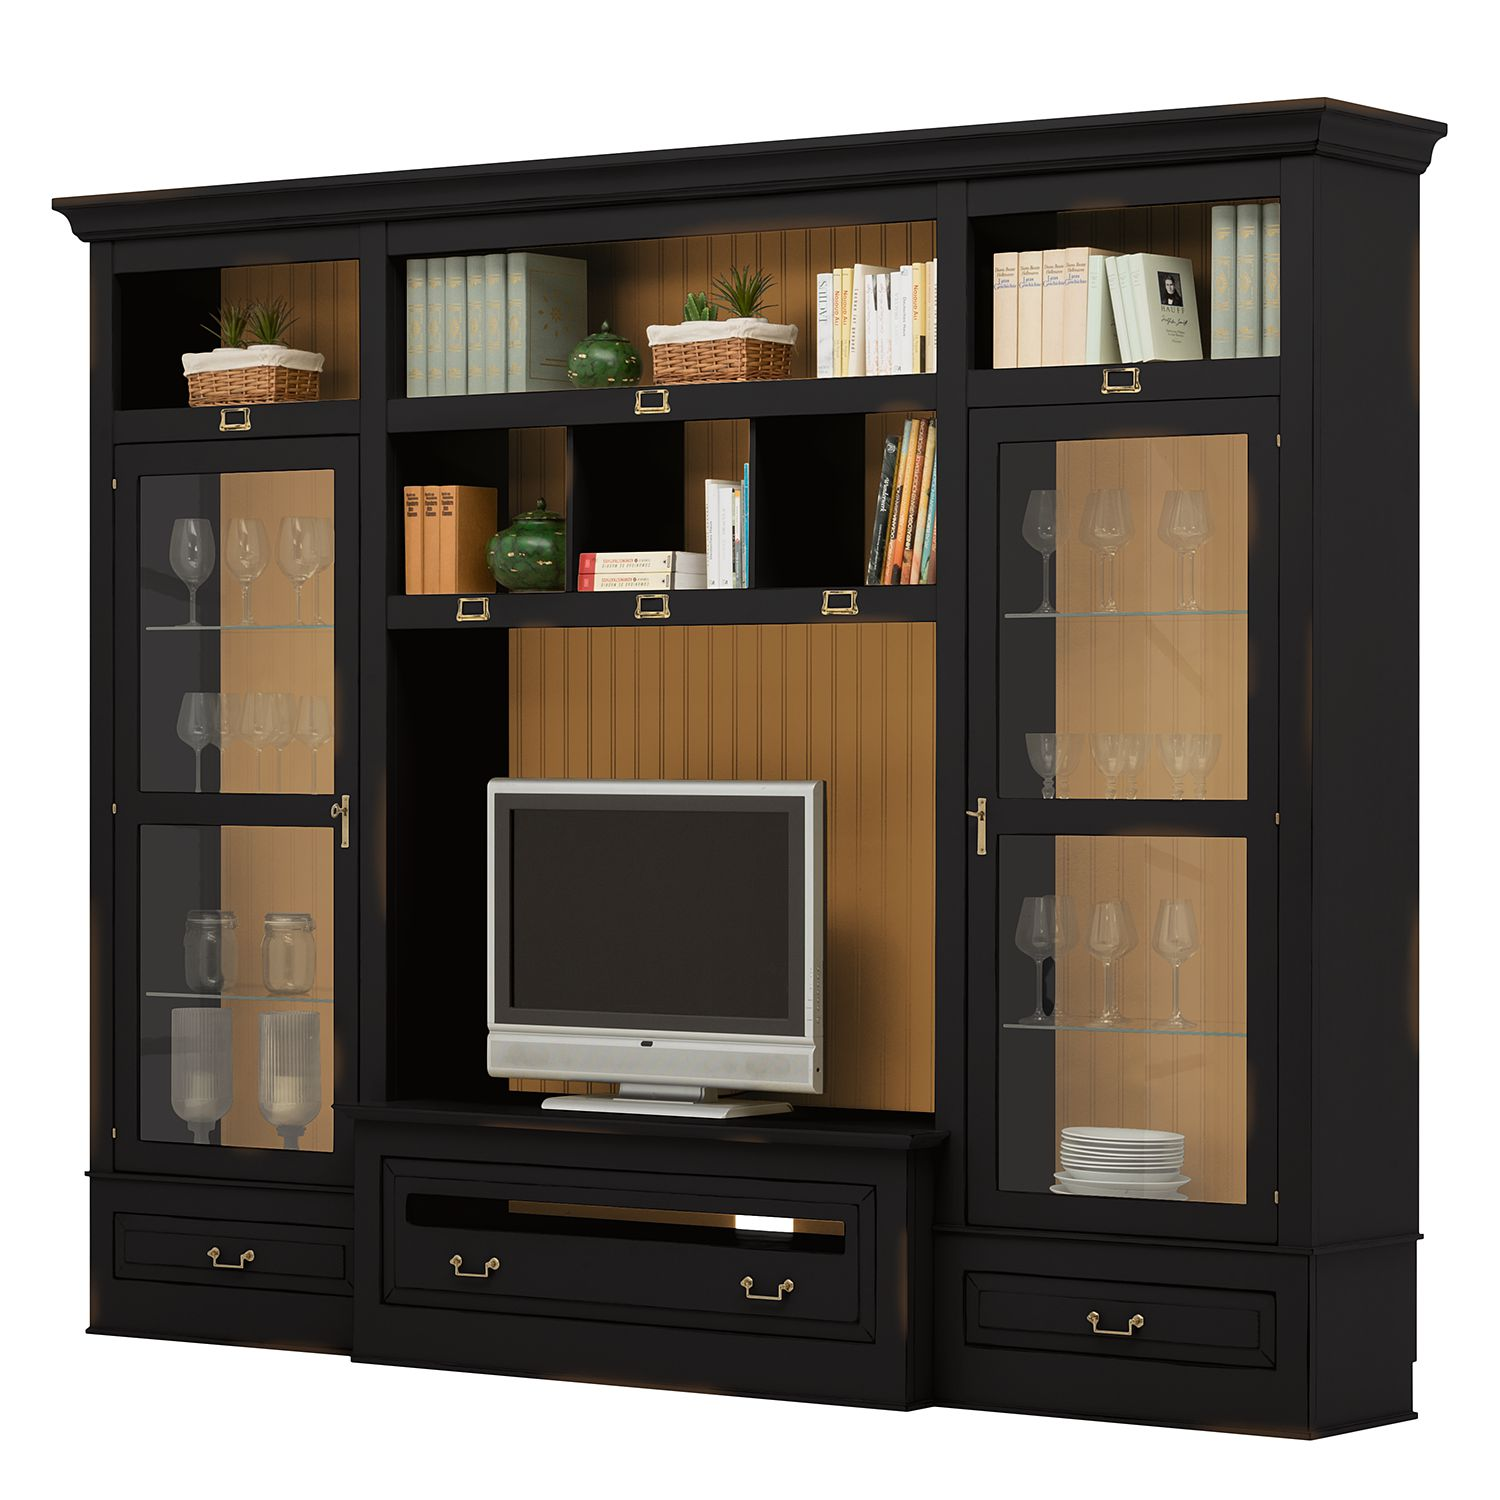 rabatt tv wand azjana ii pinie teilmassiv schwarz pinie honig ohne. Black Bedroom Furniture Sets. Home Design Ideas